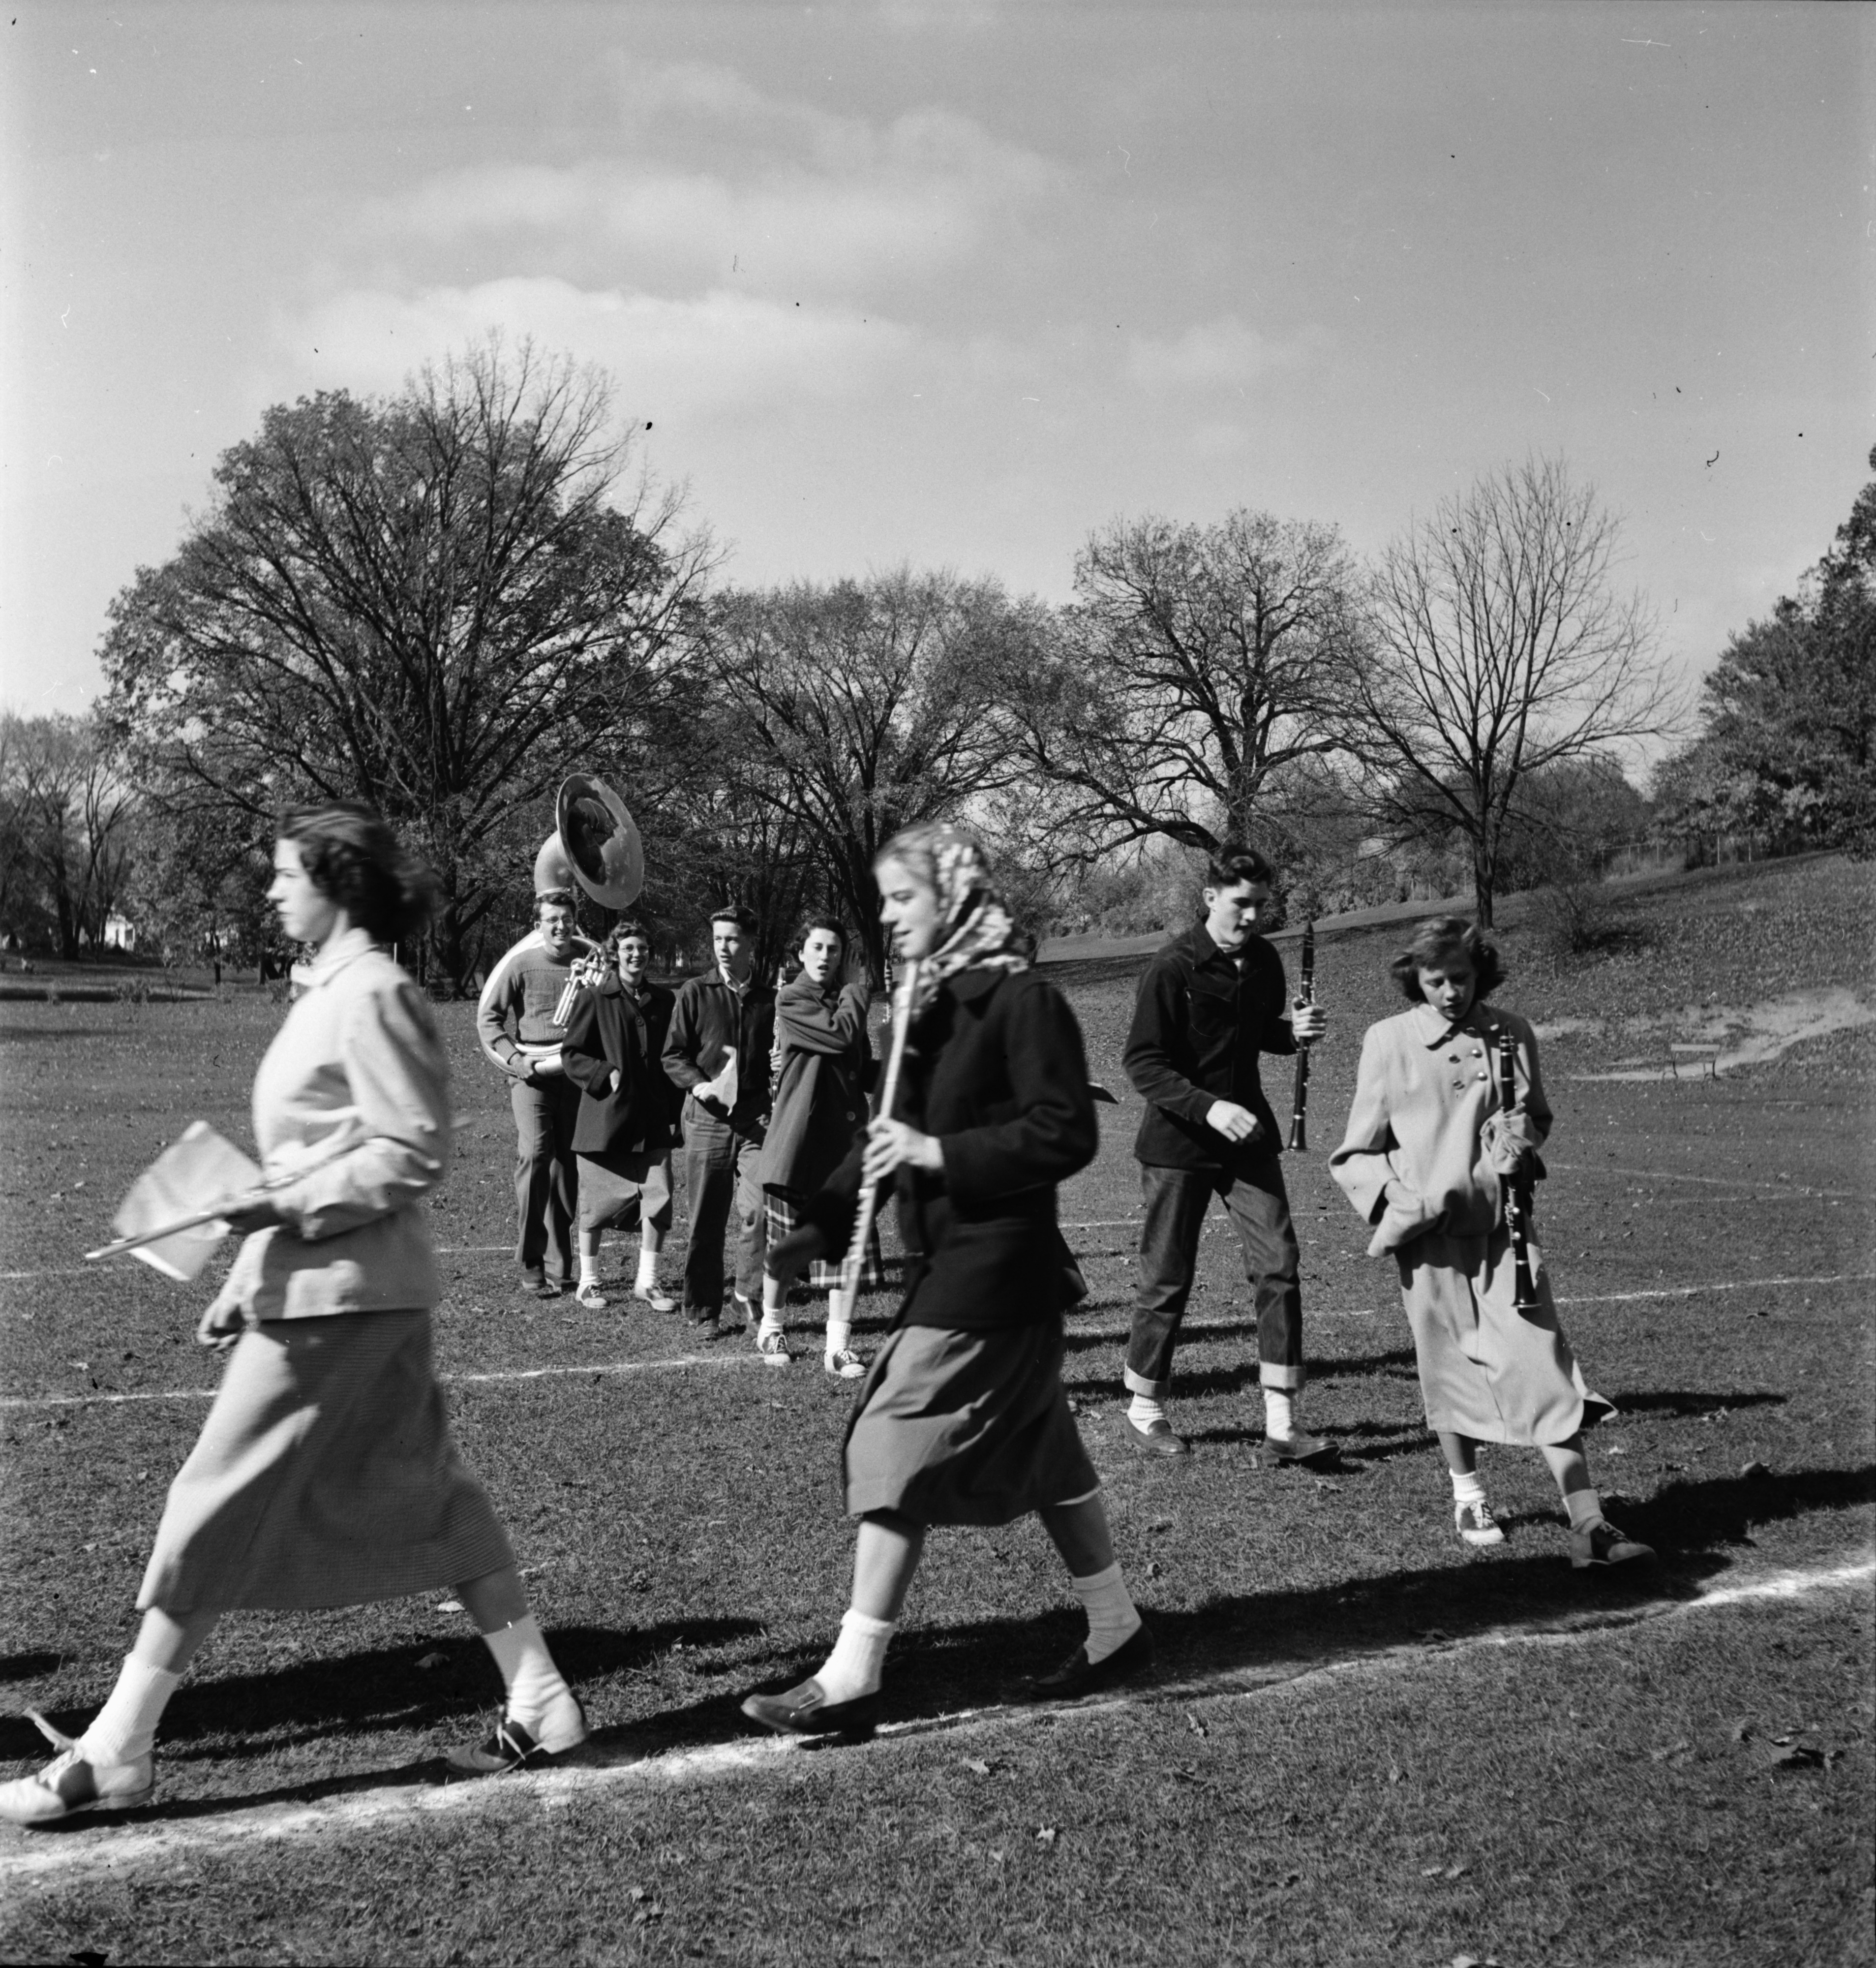 Ann Arbor High School Band Rehearsal at West Park, October 1950 image